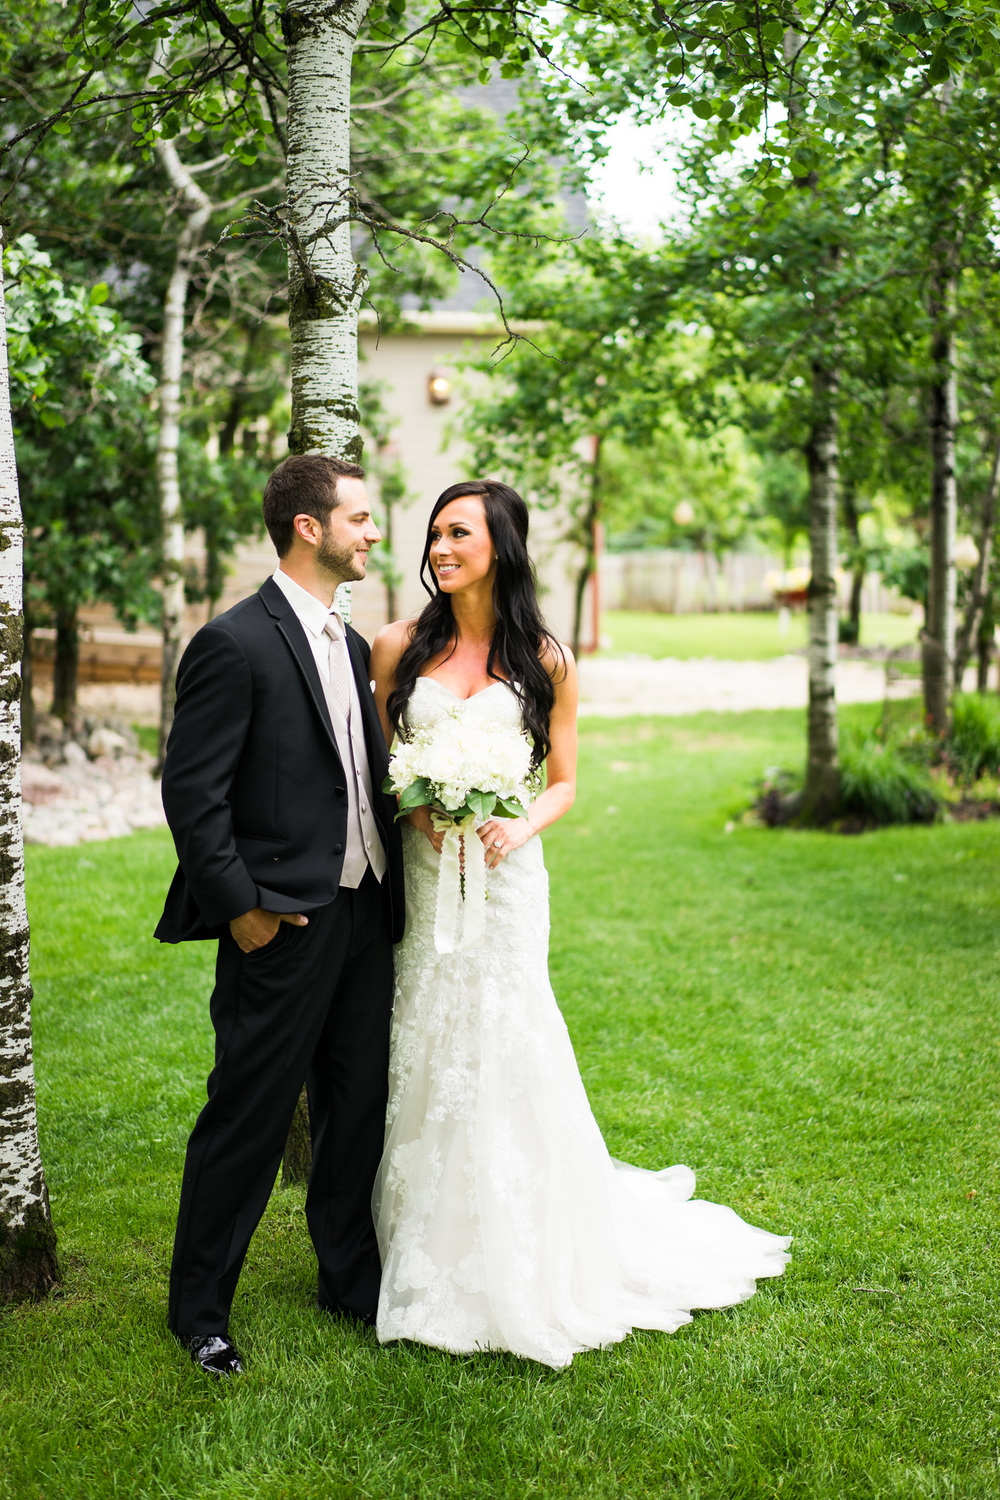 Hillary and Mark - Pineridge Hollow Wedding - Cojo Photo-344.jpg